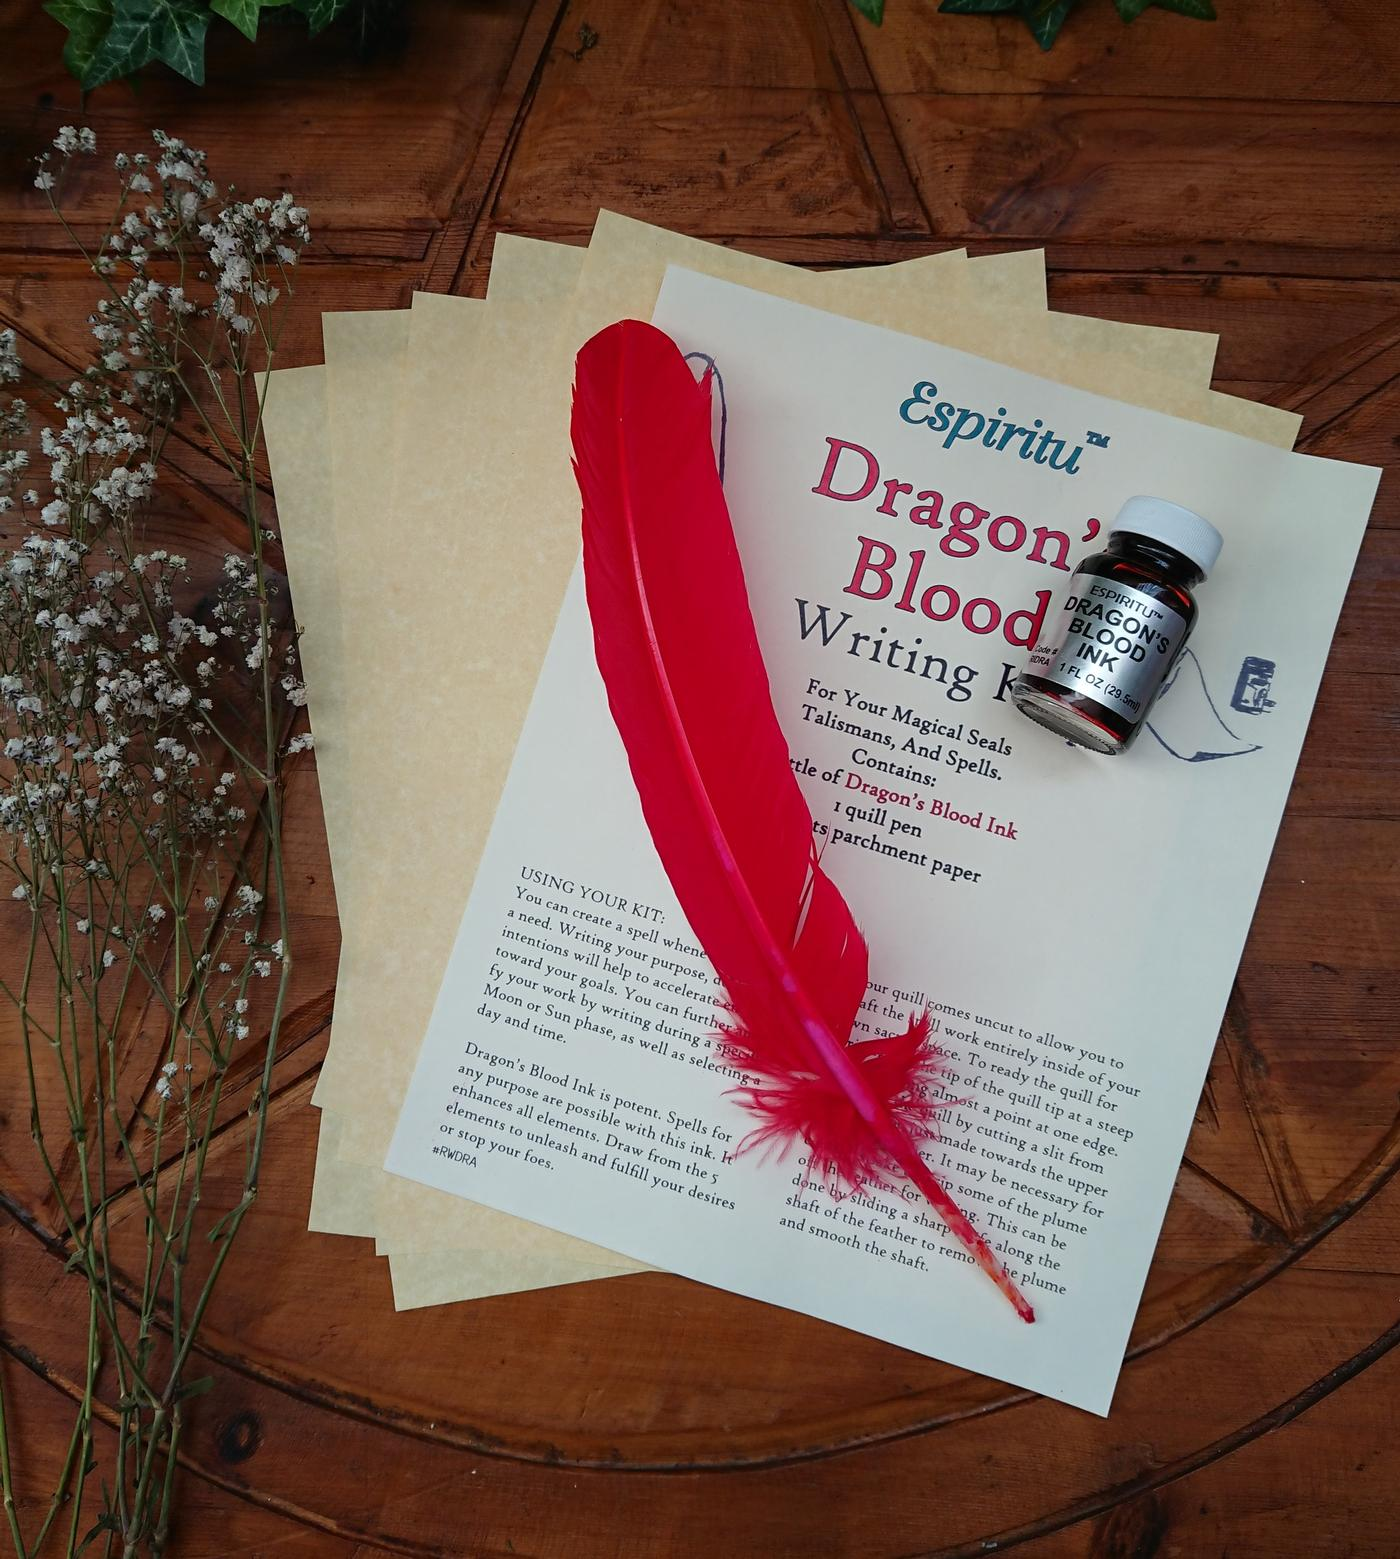 Witches Dragon's Blood Writing Kit